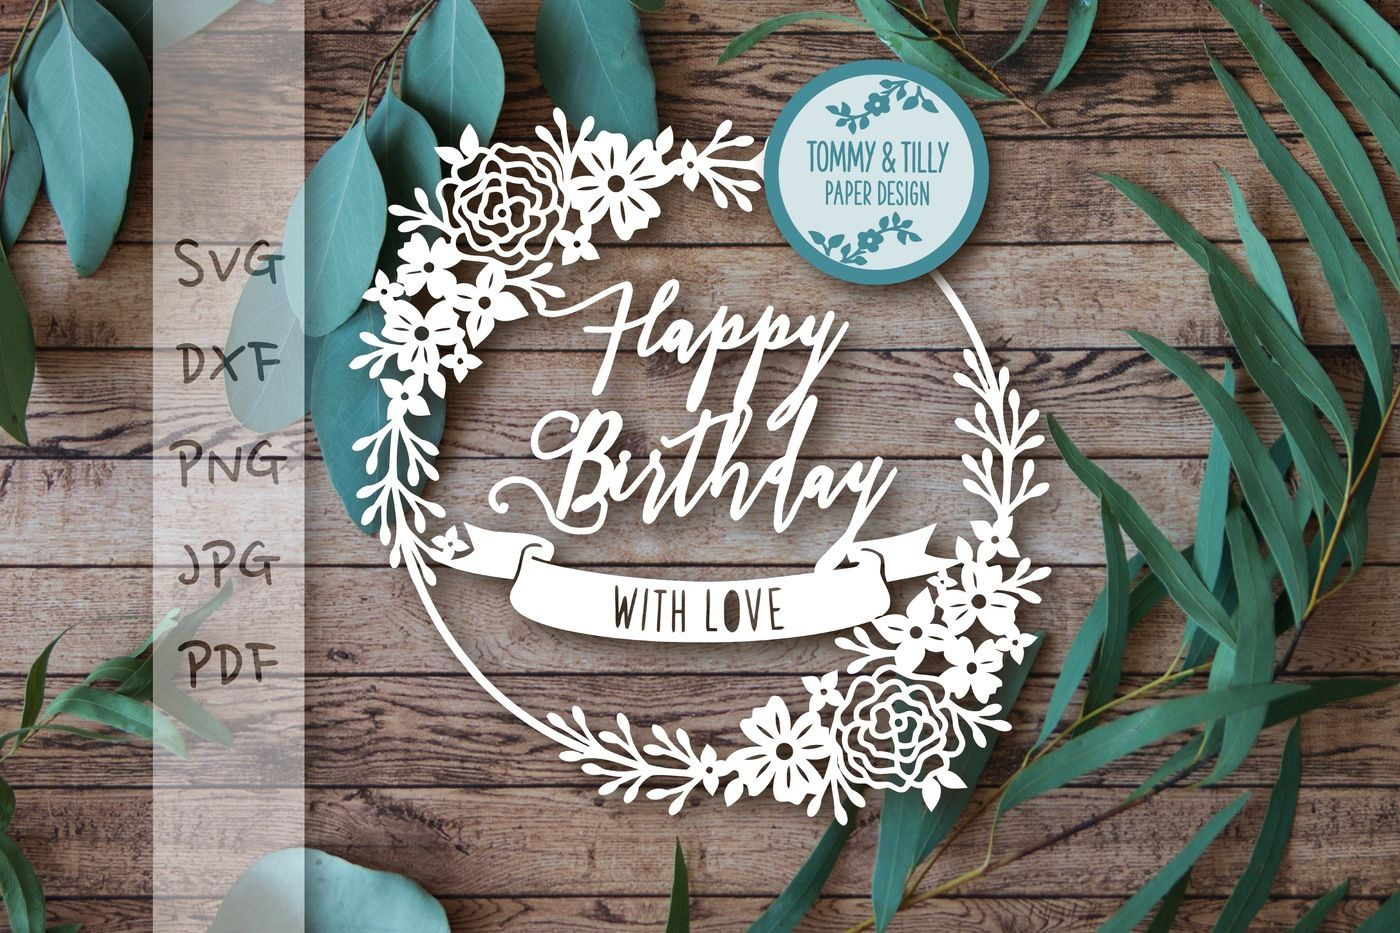 Happy Birthday Svg Dxf Png Pdf Jpg By Tommy And Tilly Design